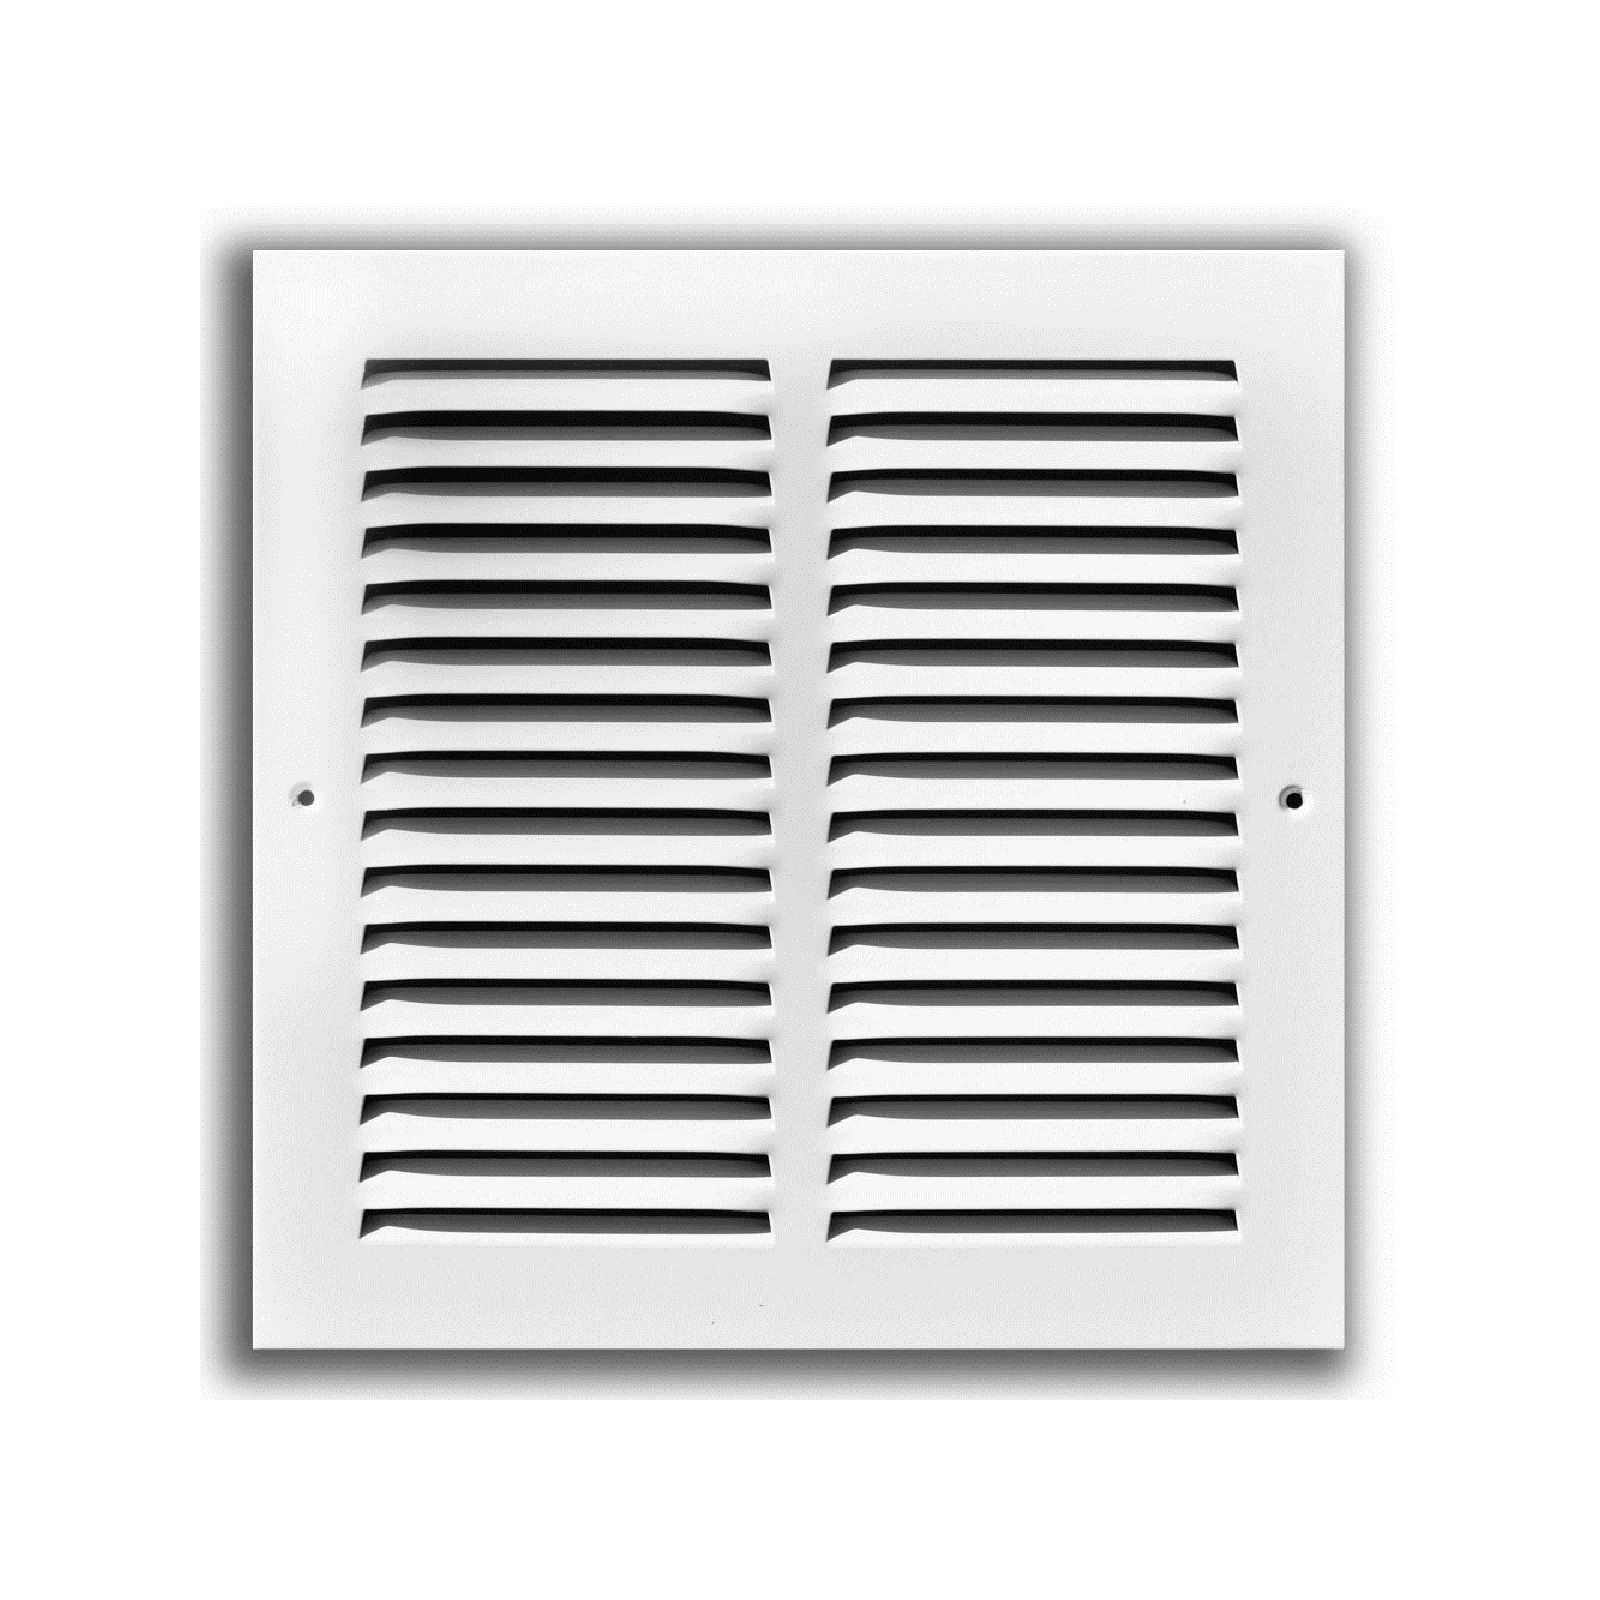 "TRUaire 170 20X14 - Steel Return Air Grille - 1/2"" Spaced Fin, White, 20"" X 14"""